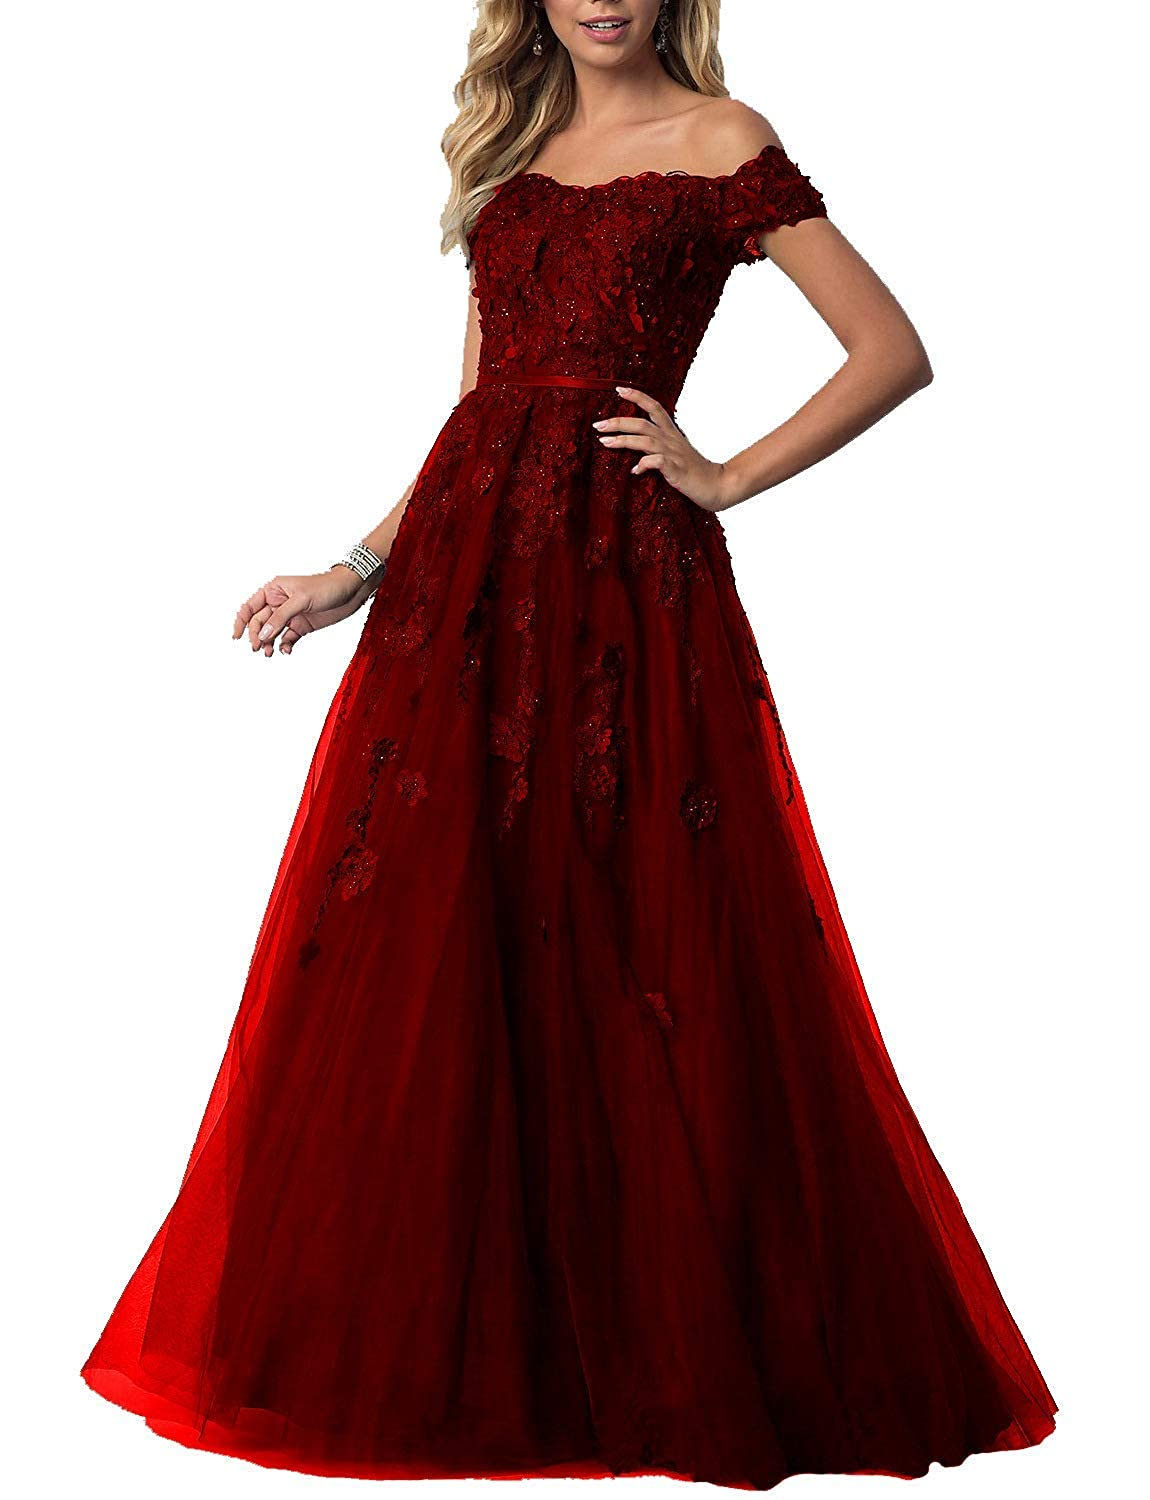 Burgundy Sulidi Women's Lace Off Shoulder Prom Dresses Tulle Prom Formal Evening Party Gowns C070